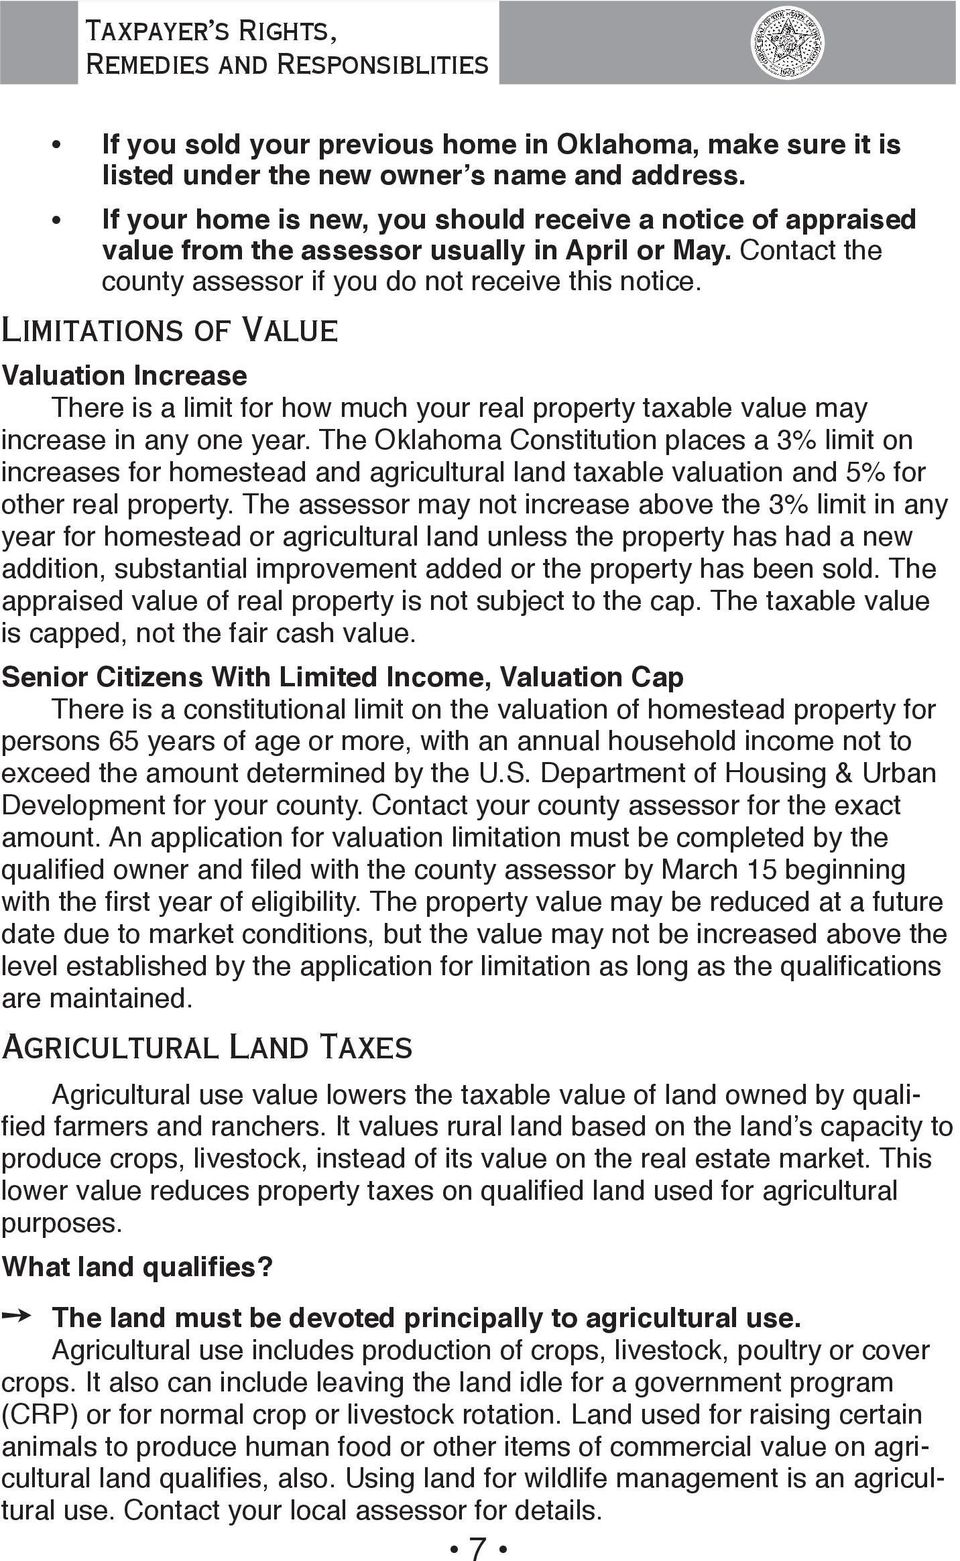 Limitations of Value Valuation Increase There is a limit for how much your real property taxable value may increase in any one year.